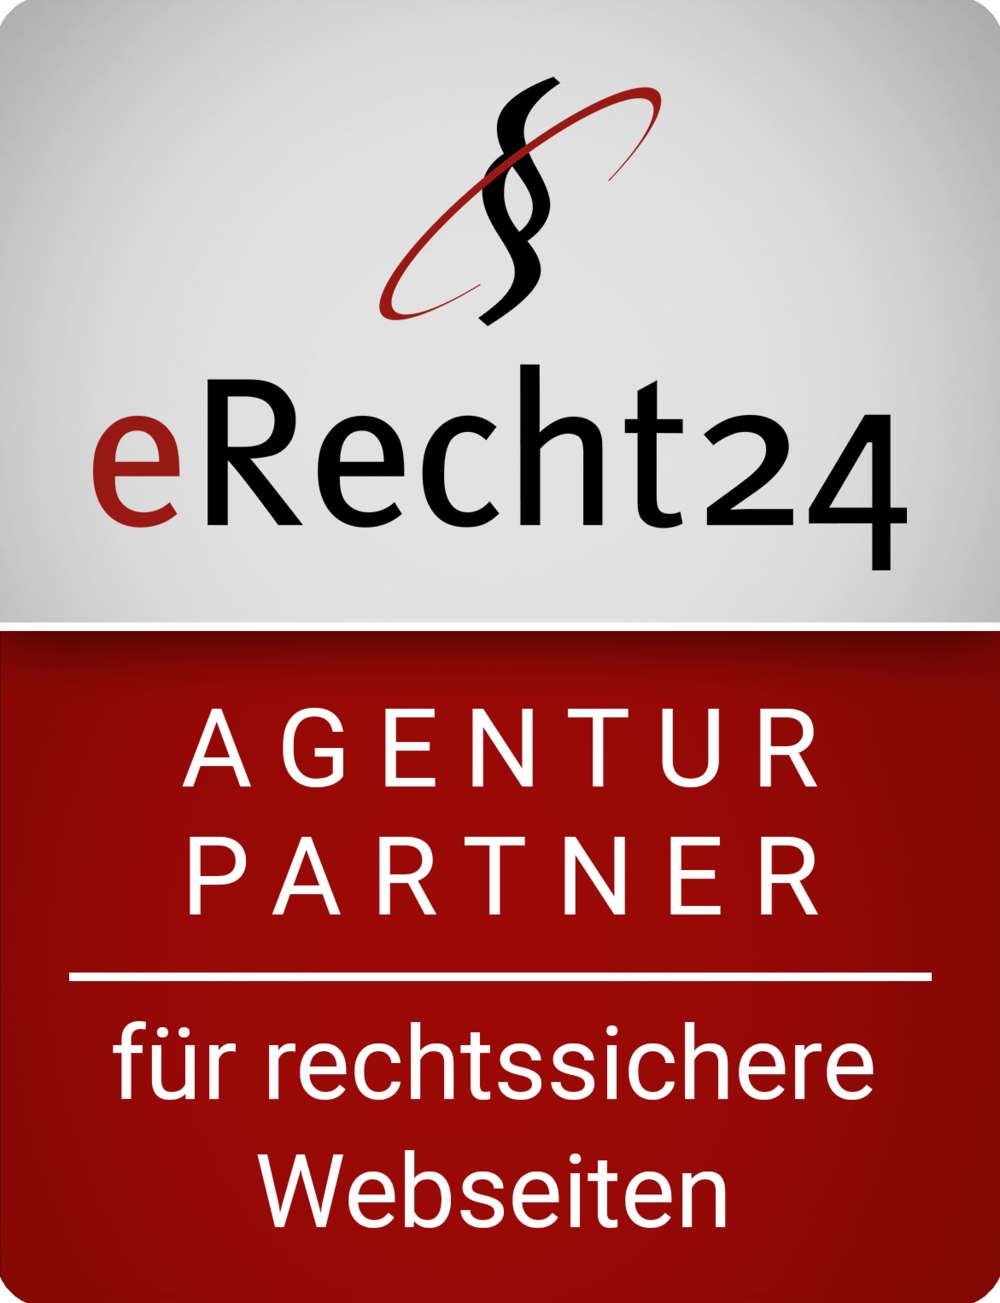 erecht24-siegel-agenturpartner-rot-gross.png